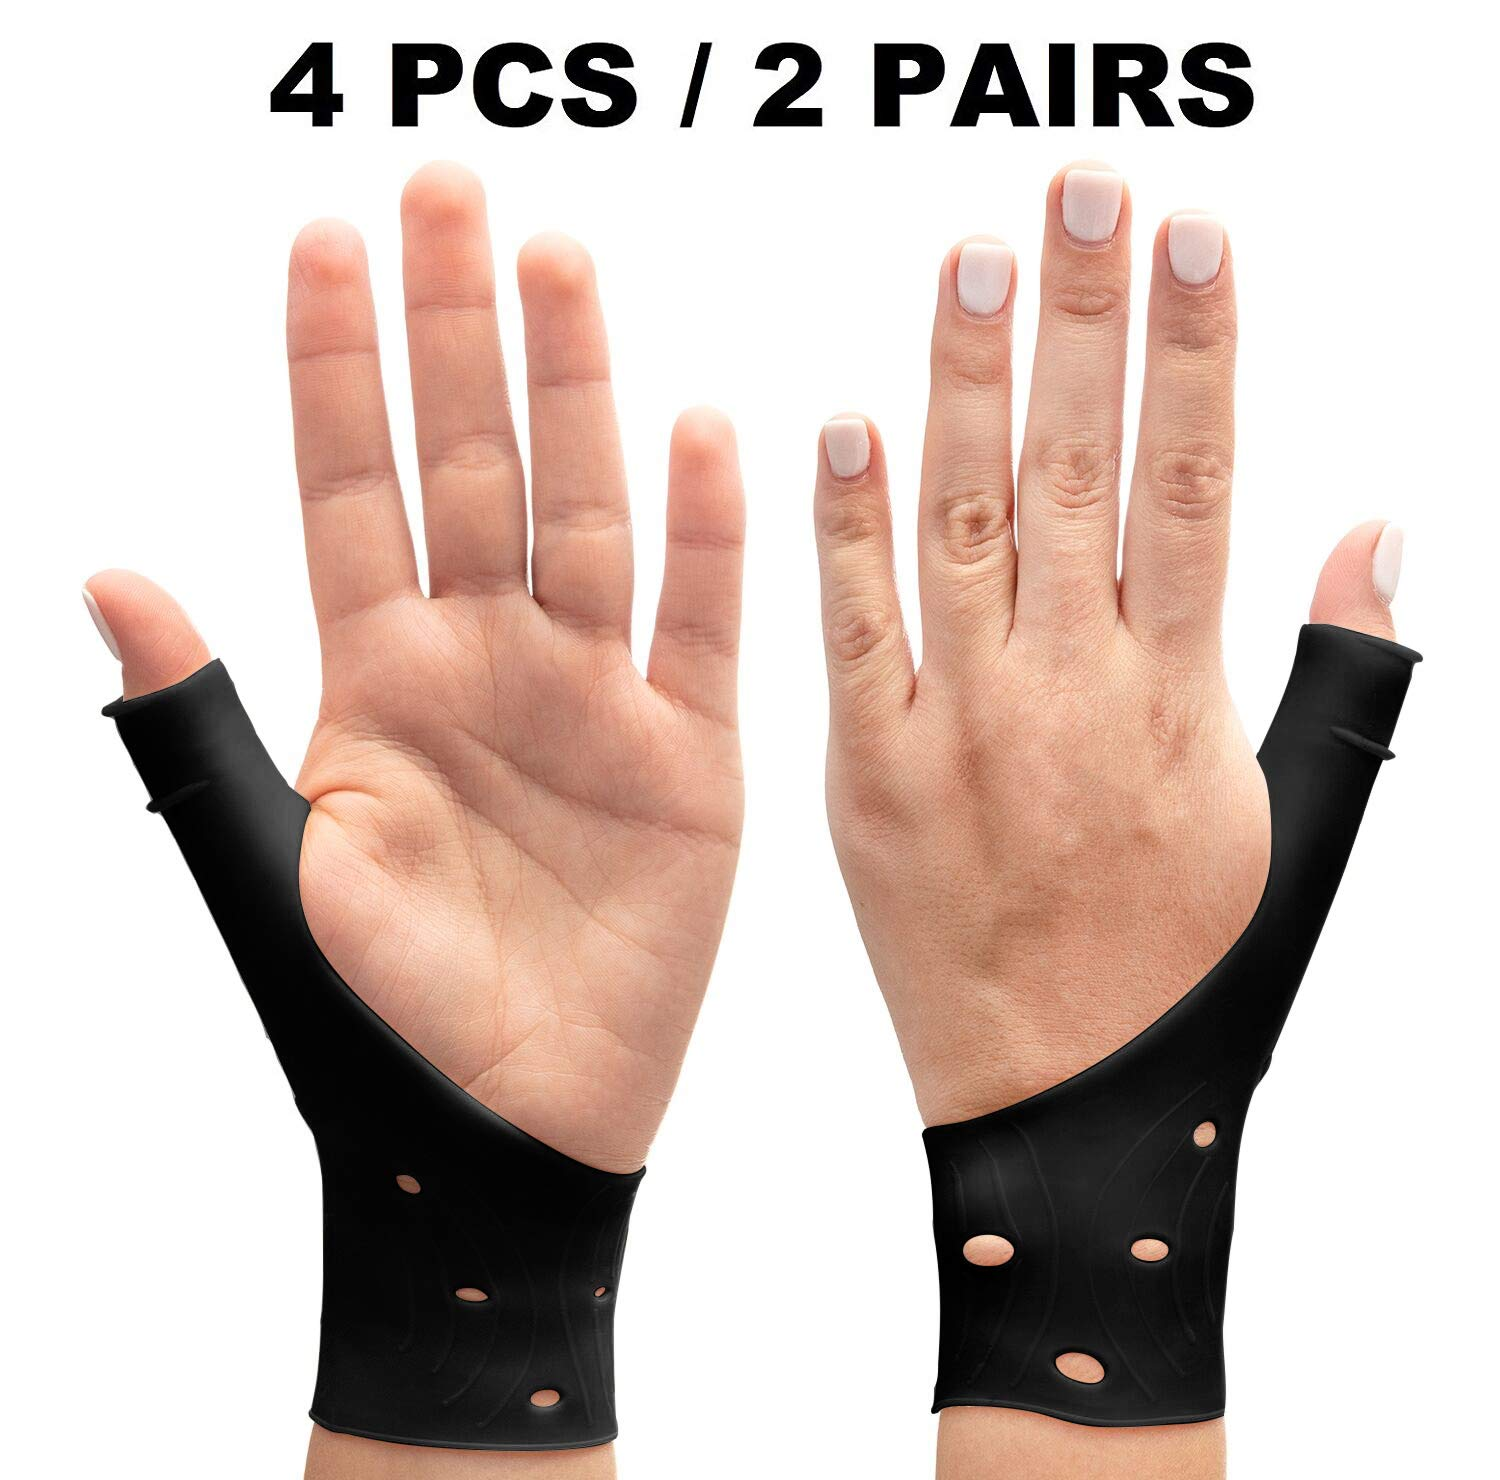 DropSky Gel Wrist Thumb Brace Breathable Waterproof | Right & Left Hand | Light Support, Relief Pain, Carpal Tunnel, Arthritis Wrist & Thumb, Great For Pilates, Yoga, Golf, Writing, Typing.